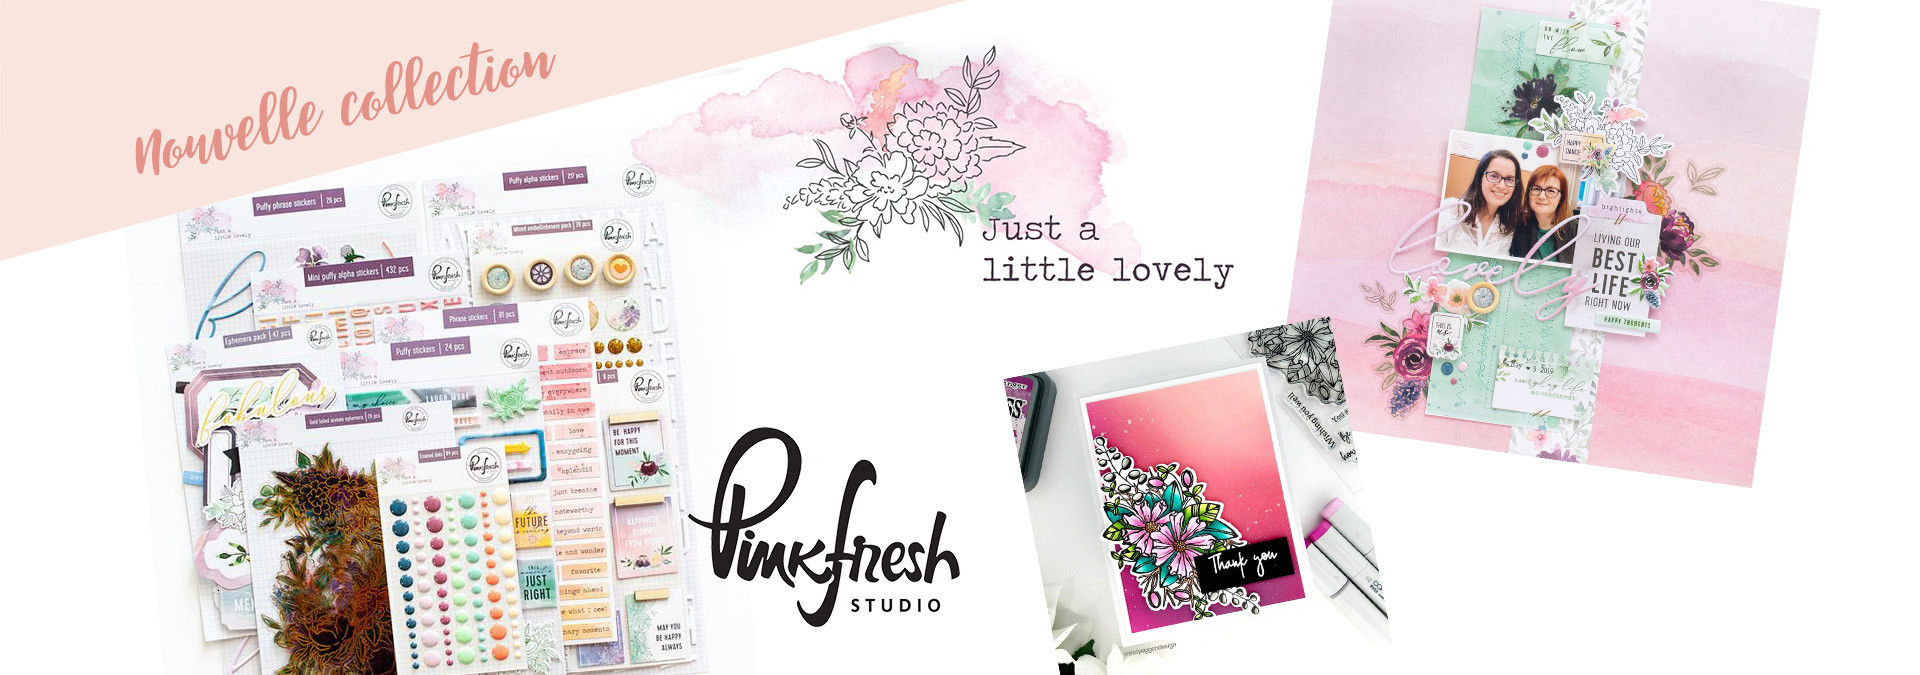 Nouvelle collection Pinkfresh Studio